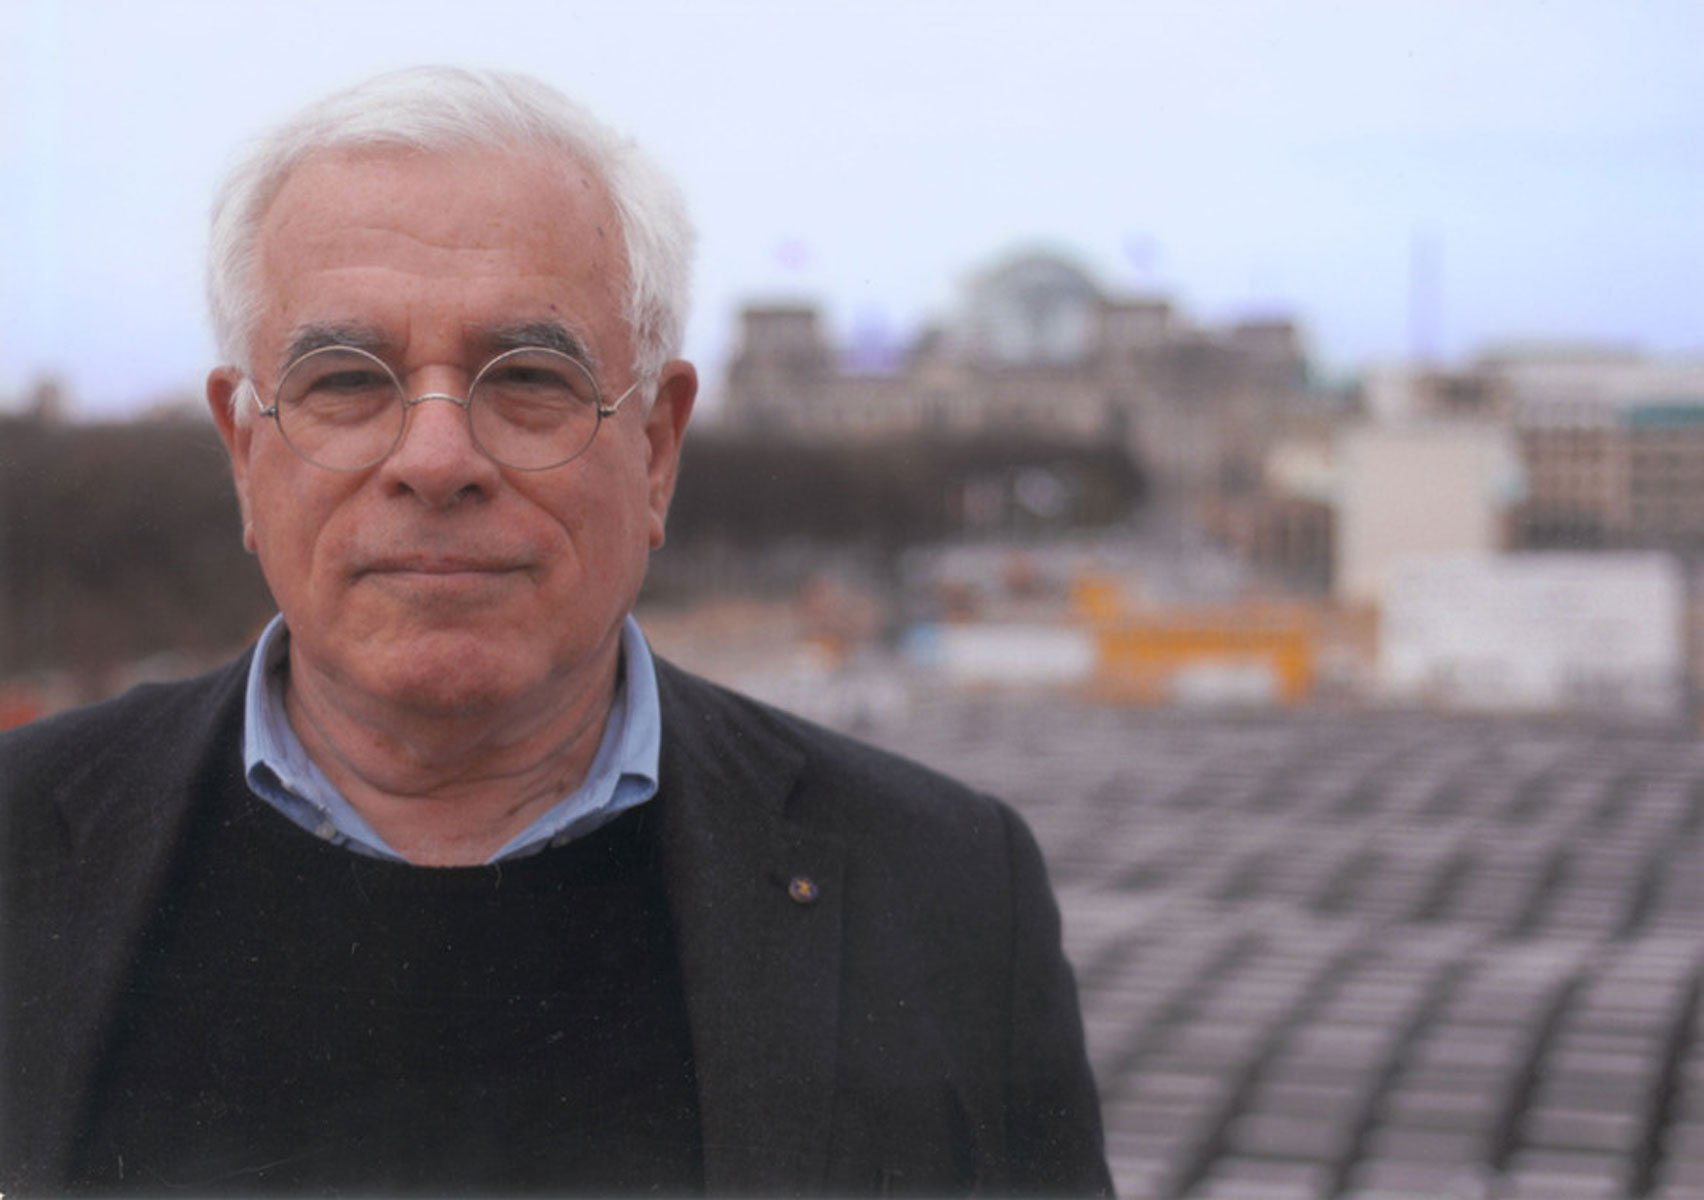 Berlin Holocaust memorial wouldn't be built today, says Peter Eisenman